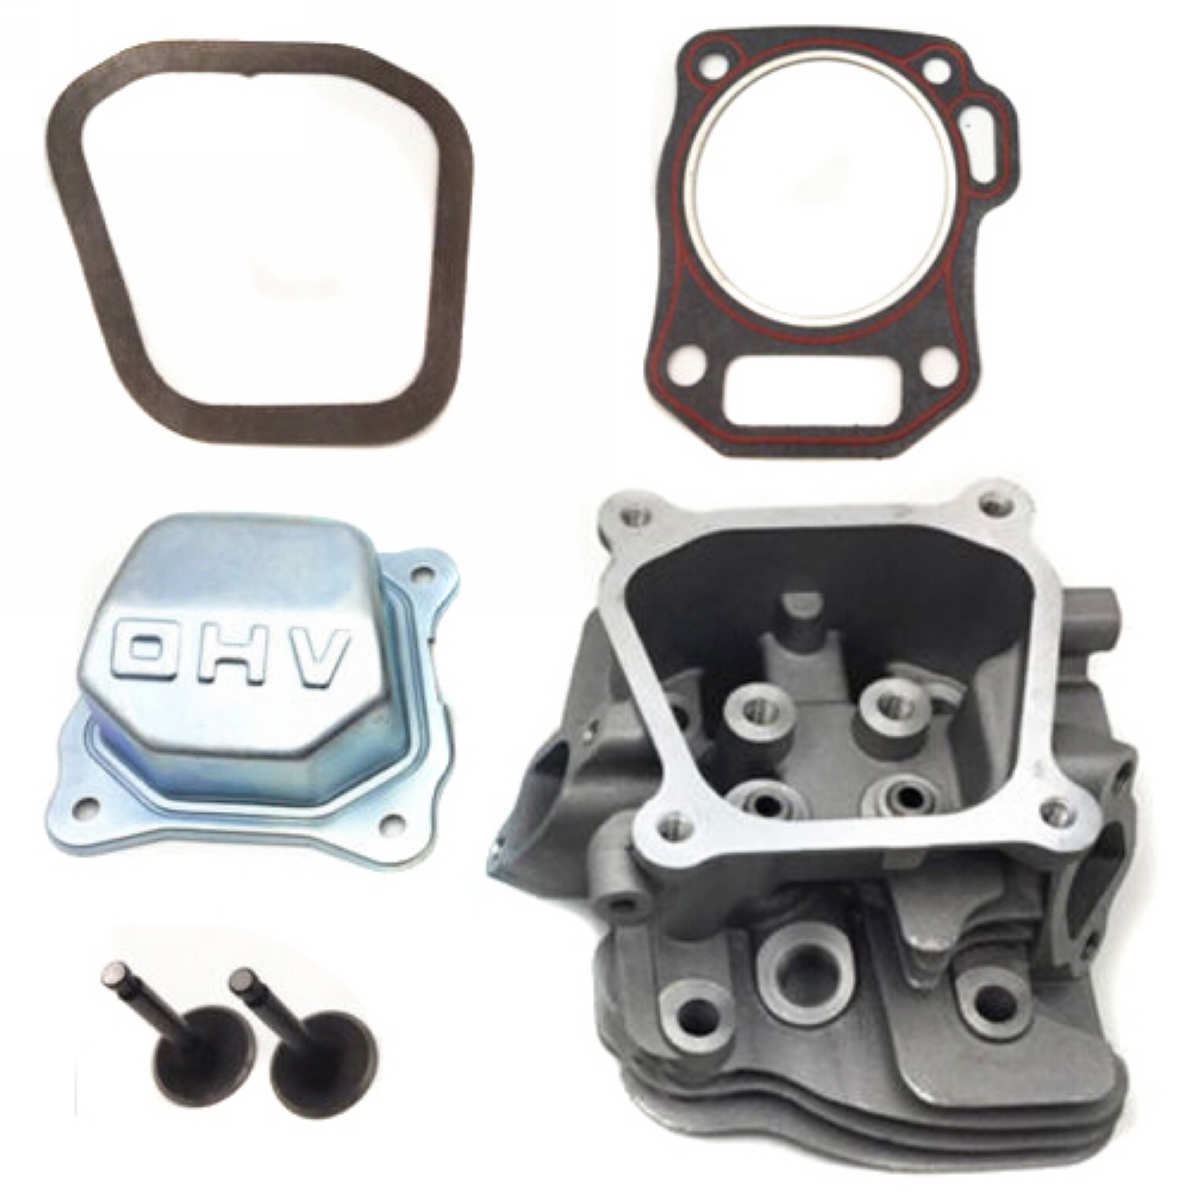 Mayitr New Cylinder Head Kit For GX200 6.5HP Engine Motor Replacement 38mm cylinder barrel piston kit